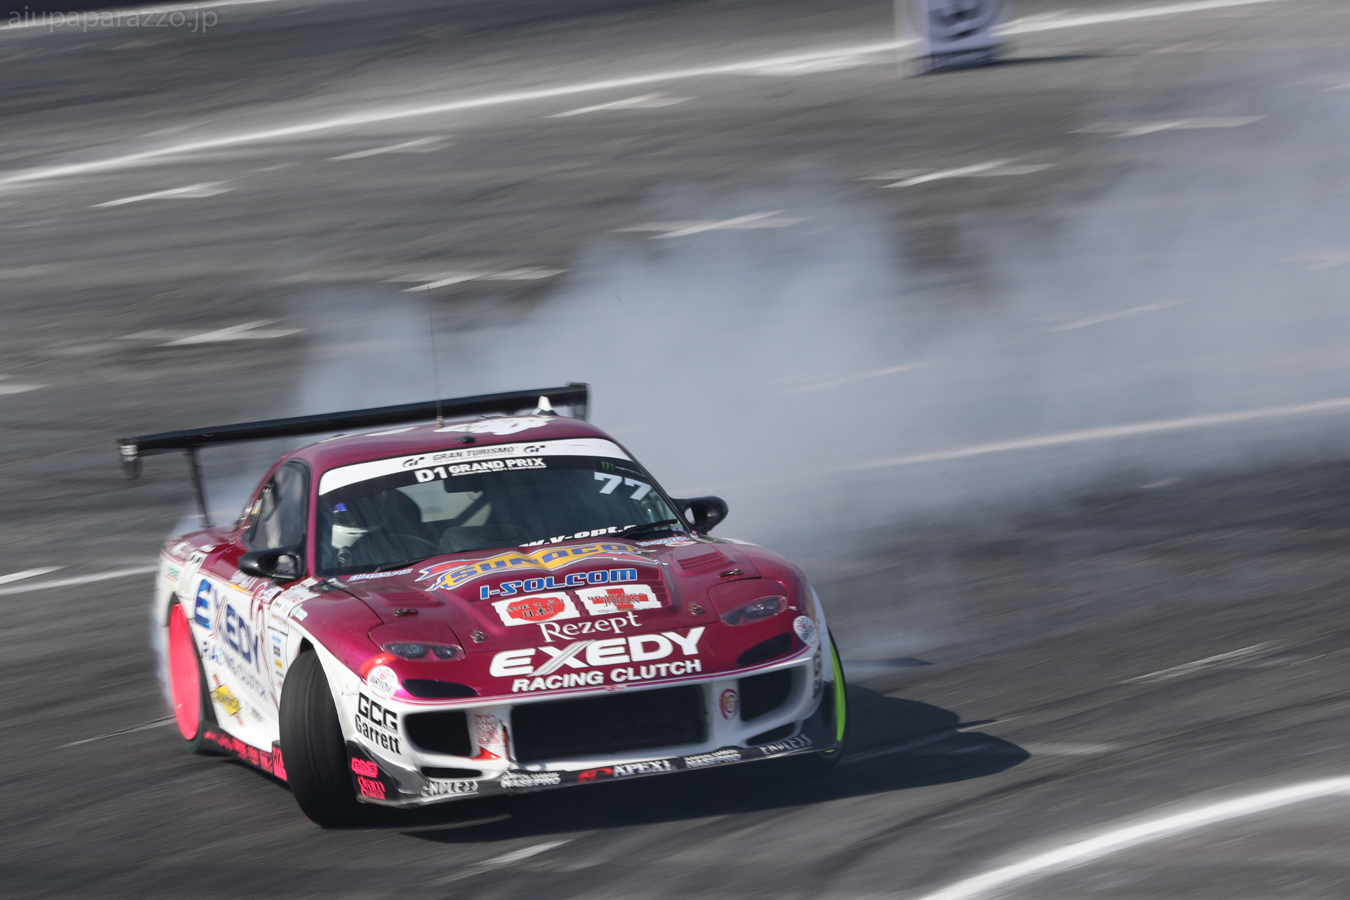 d1gp_tan2016lap3-27.jpg